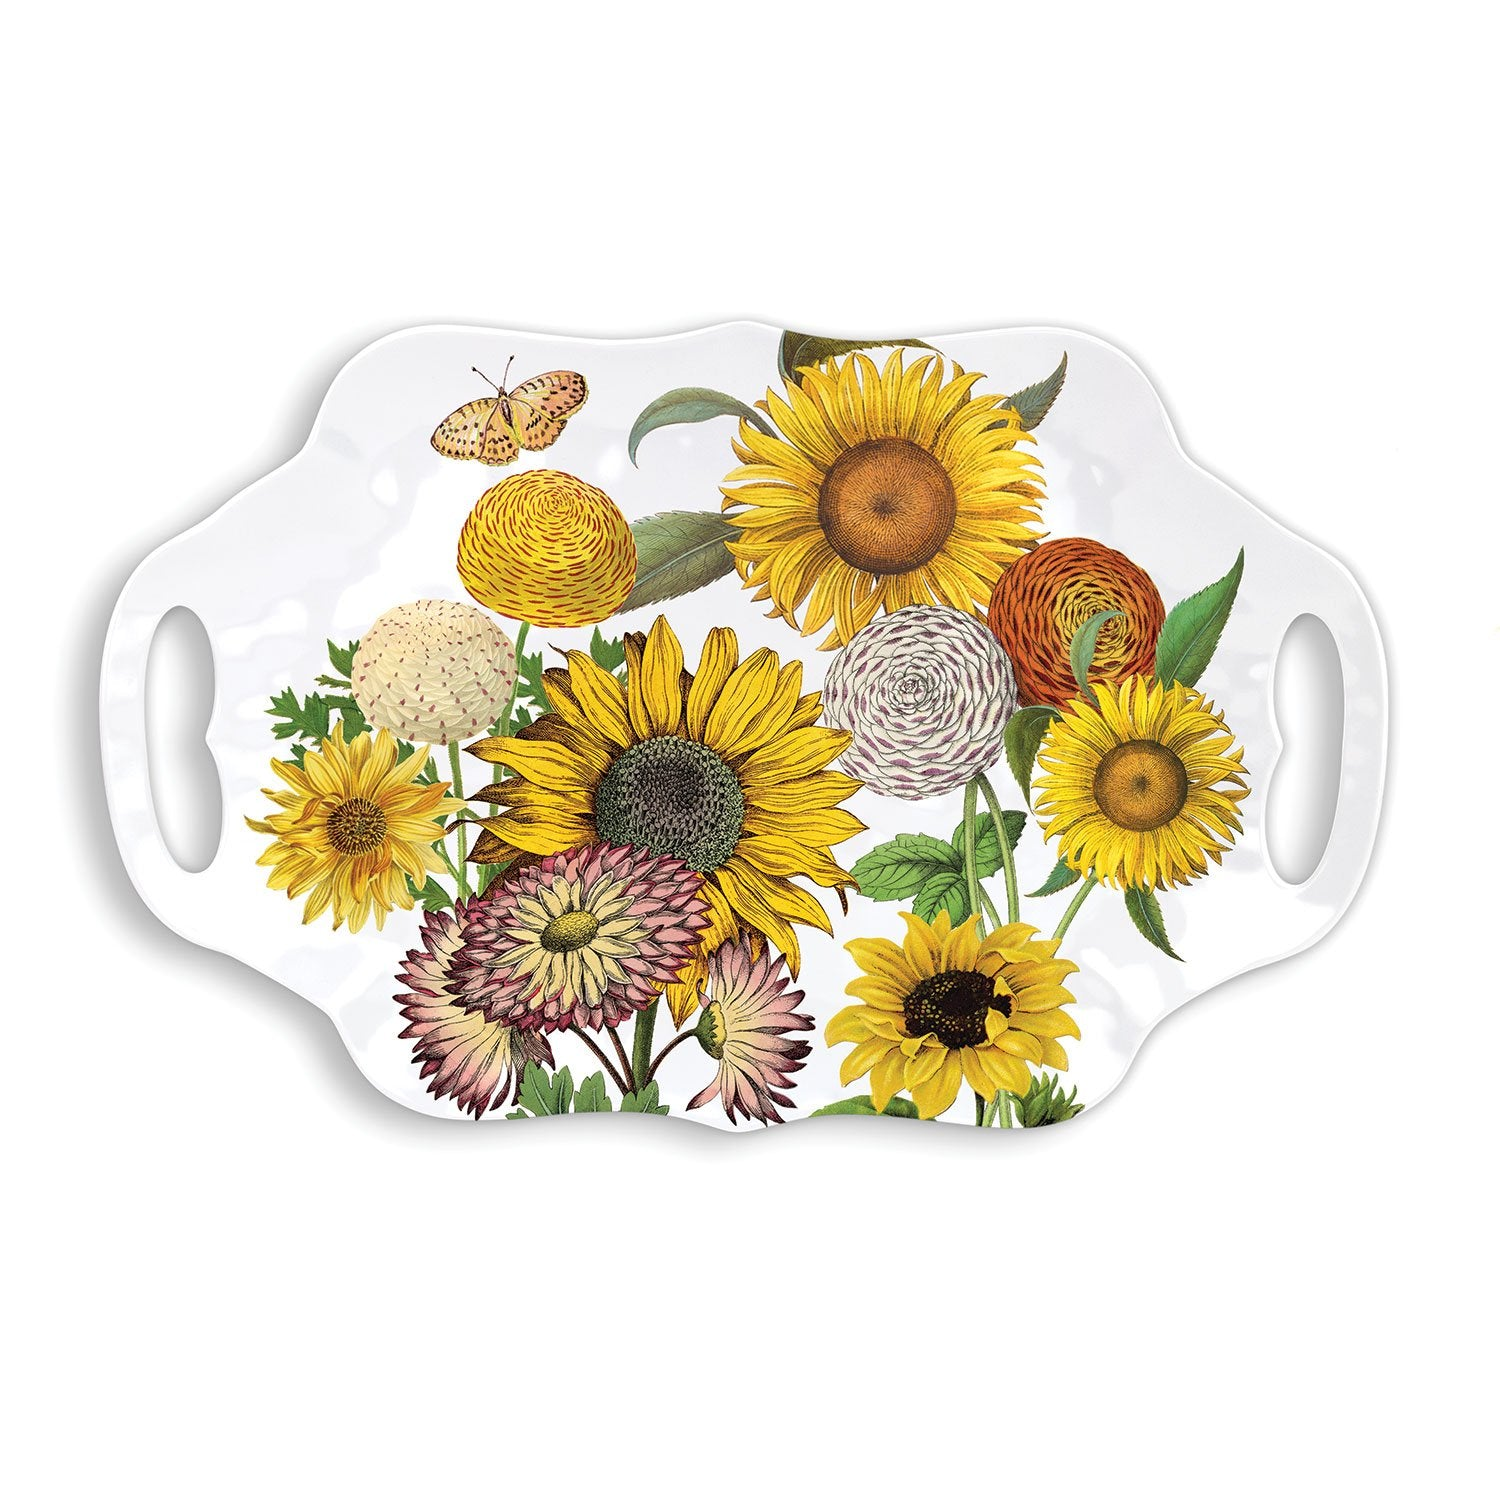 Sunflower Melamine Serveware Serving Tray